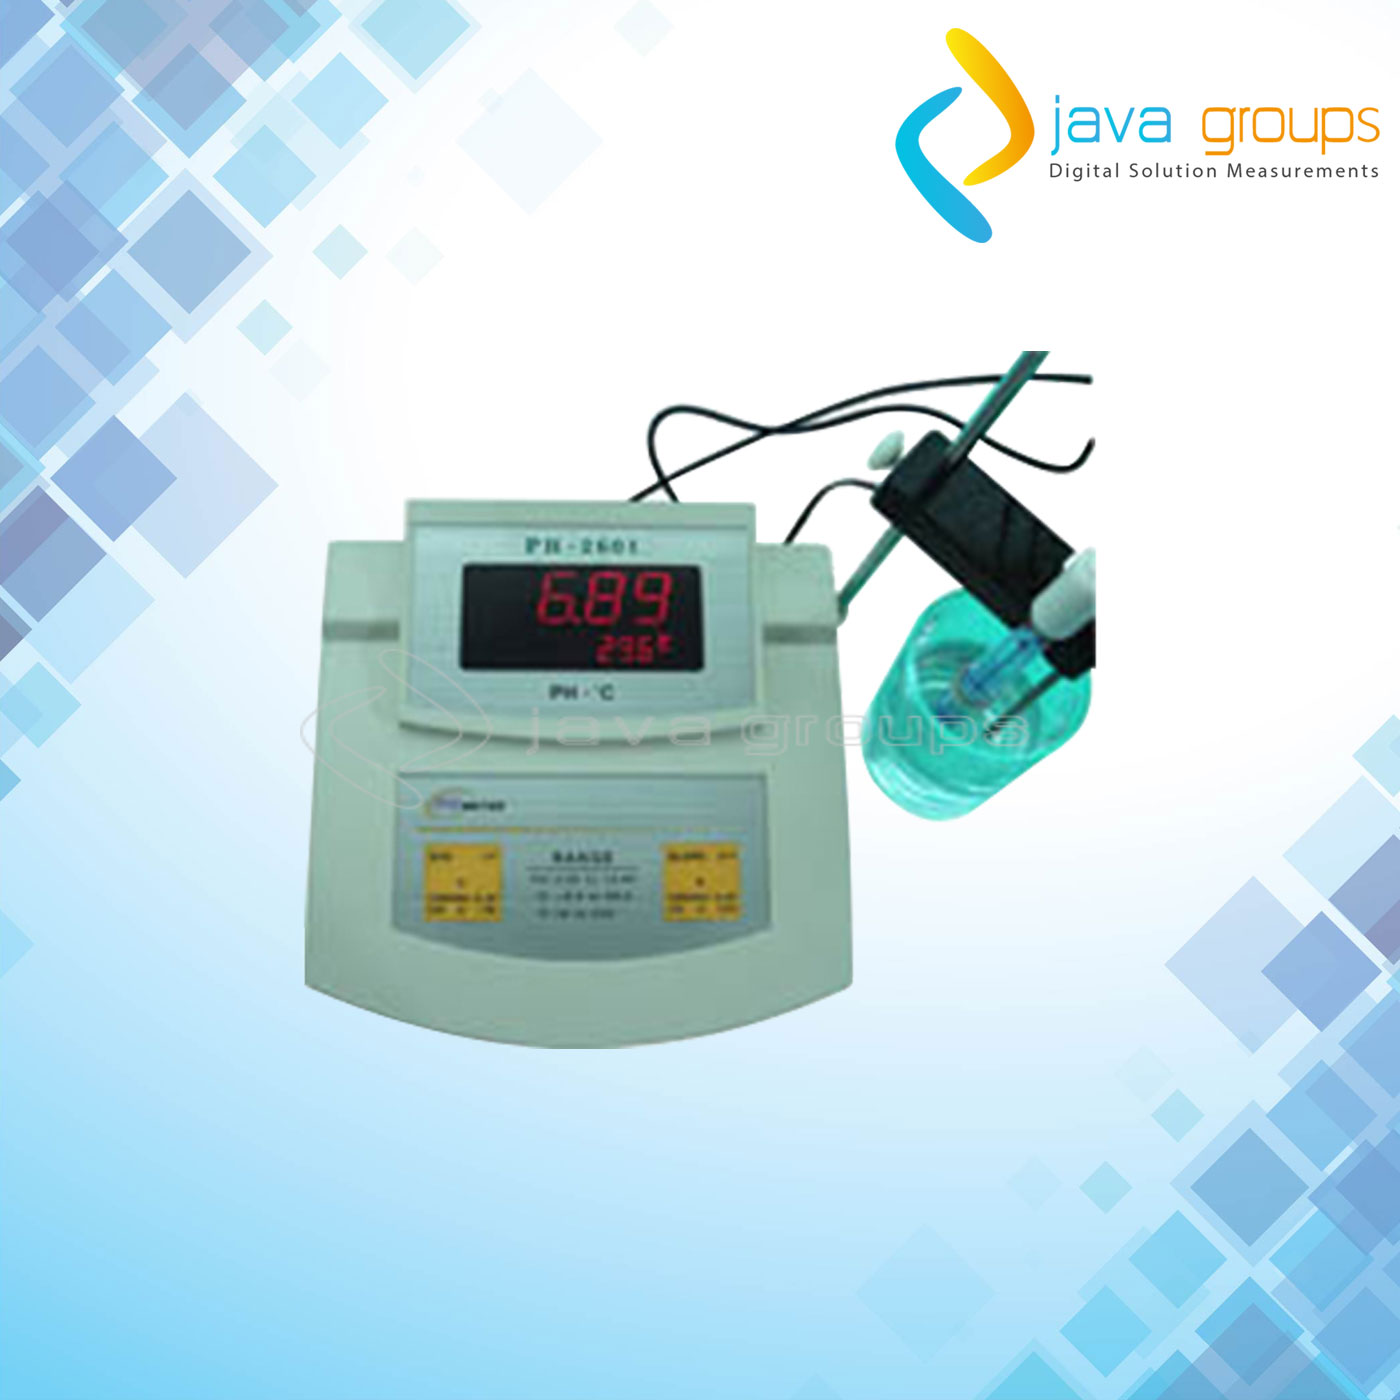 Alat Bench pH/Temp Meter Portabel Seri KL-2601